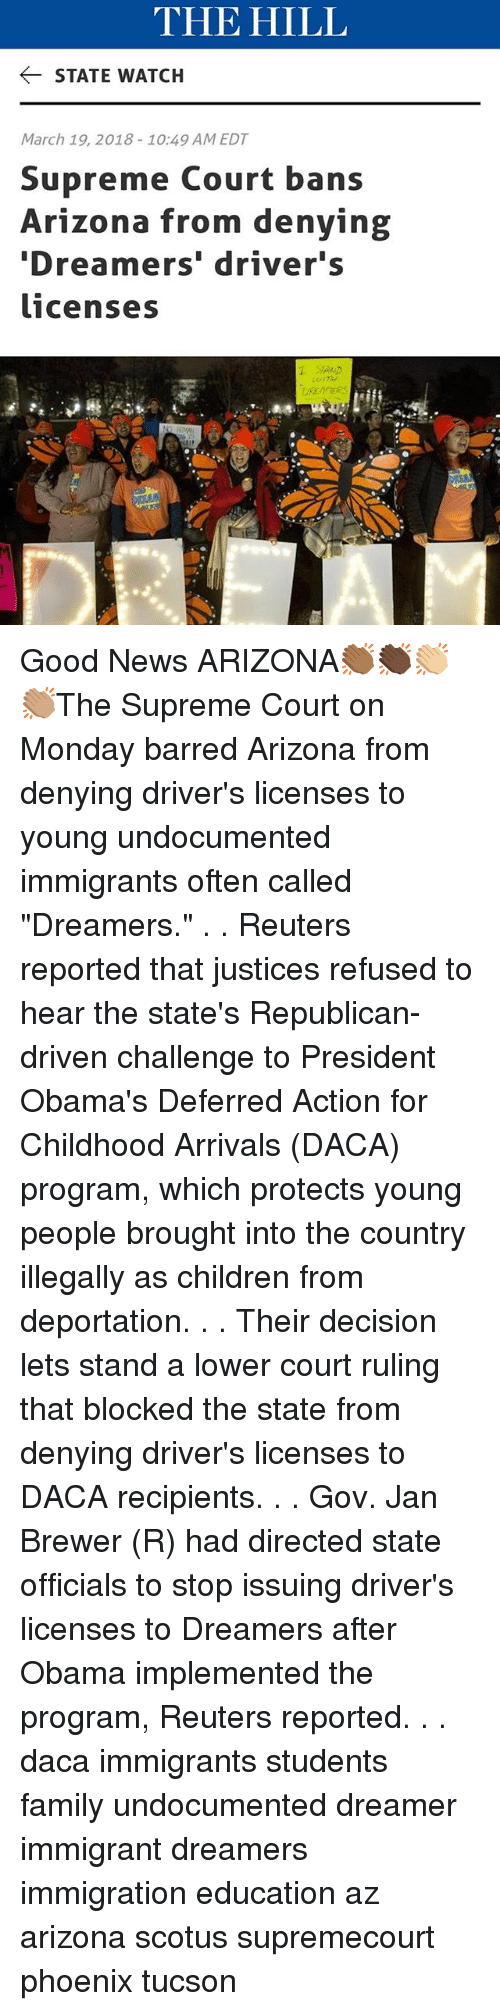 "barred: THE HILL  STATE WATCH  March 19, 2018-10:49 AM EDT  Supreme Court bans  Arizona from denying  Dreamers' driver's  licenses Good News ARIZONA👏🏾👏🏿👏🏼👏🏽The Supreme Court on Monday barred Arizona from denying driver's licenses to young undocumented immigrants often called ""Dreamers."" . . Reuters reported that justices refused to hear the state's Republican-driven challenge to President Obama's Deferred Action for Childhood Arrivals (DACA) program, which protects young people brought into the country illegally as children from deportation. . . Their decision lets stand a lower court ruling that blocked the state from denying driver's licenses to DACA recipients. . . Gov. Jan Brewer (R) had directed state officials to stop issuing driver's licenses to Dreamers after Obama implemented the program, Reuters reported. . . daca immigrants students family undocumented dreamer immigrant dreamers immigration education az arizona scotus supremecourt phoenix tucson"